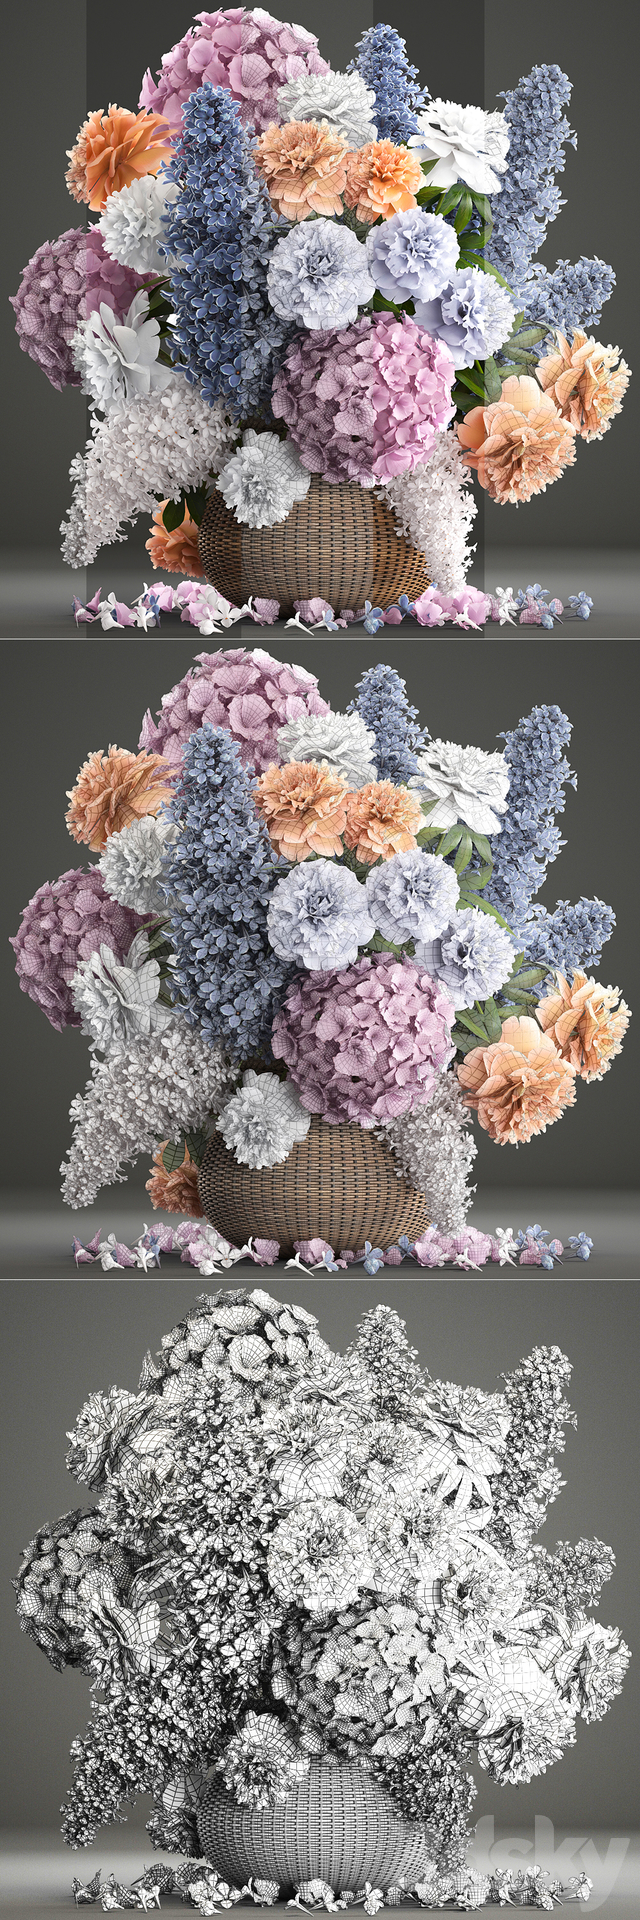 A bouquet of flowers 84.